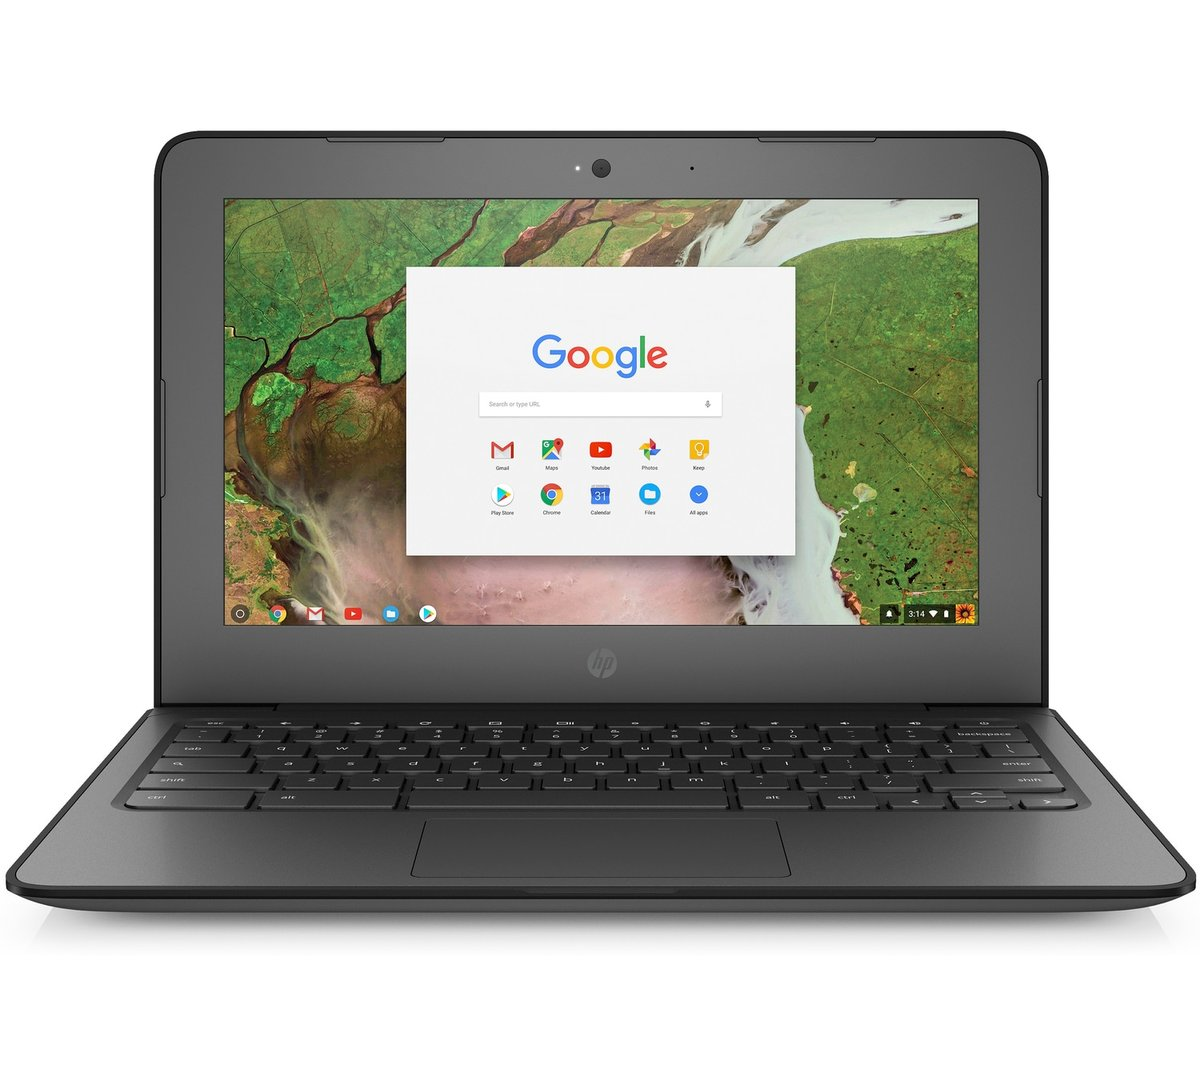 Ноутбук HP ChromeBook 11 G6&nbsp;<img style='position: relative;' src='/image/only_to_order_edit.gif' alt='На заказ' title='На заказ' />